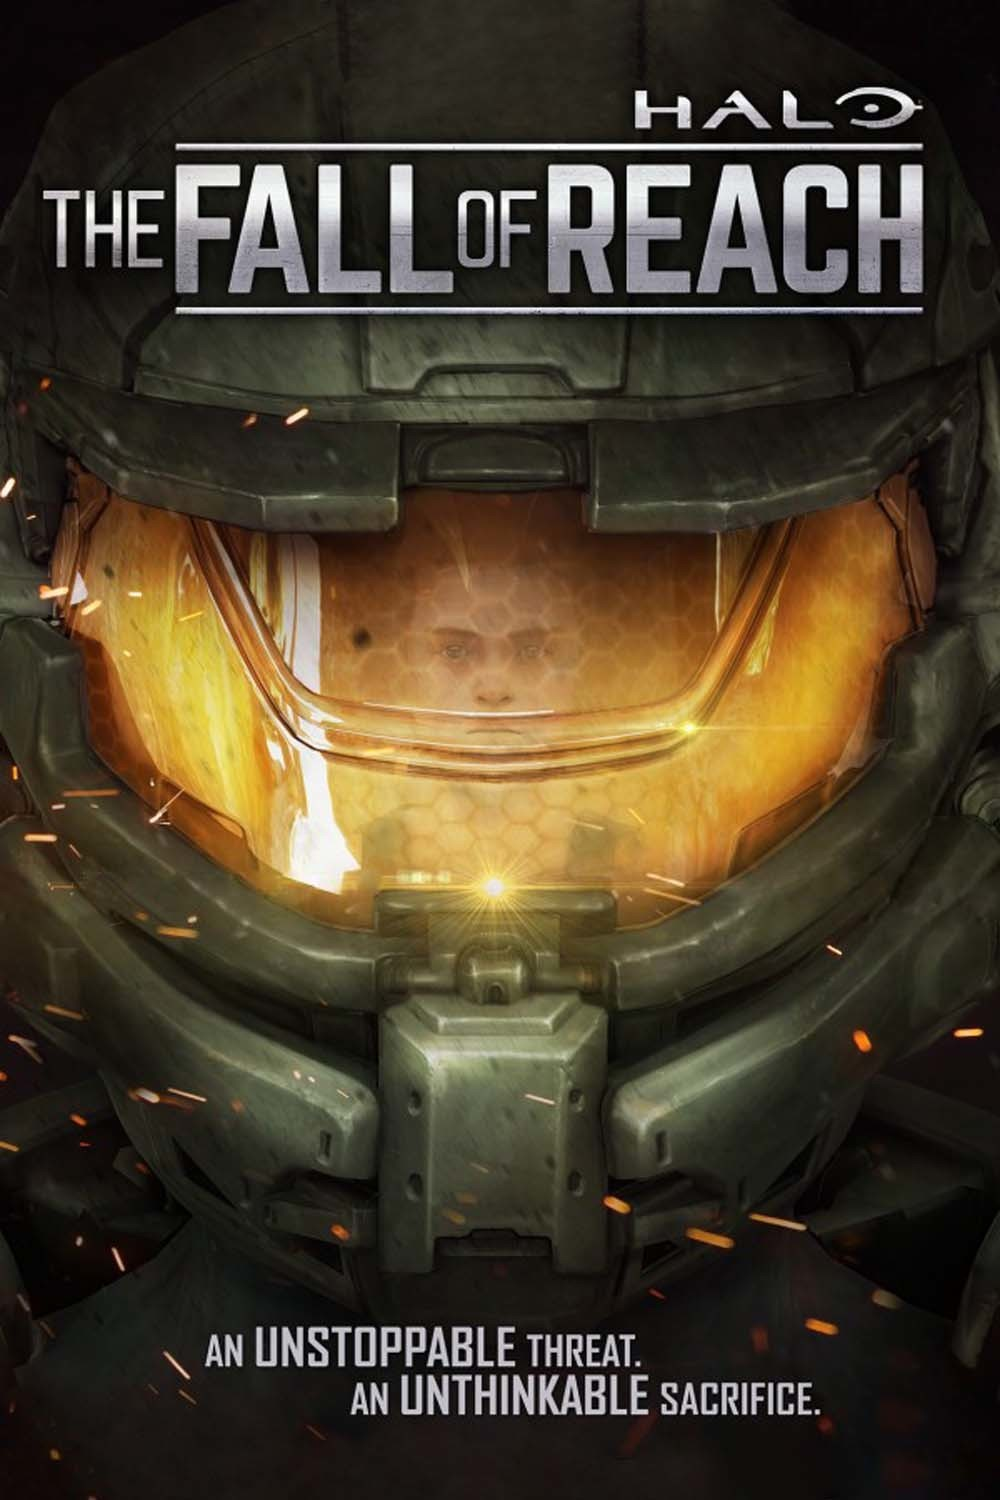 Halo: A Queda de Reach Torrent Baixar